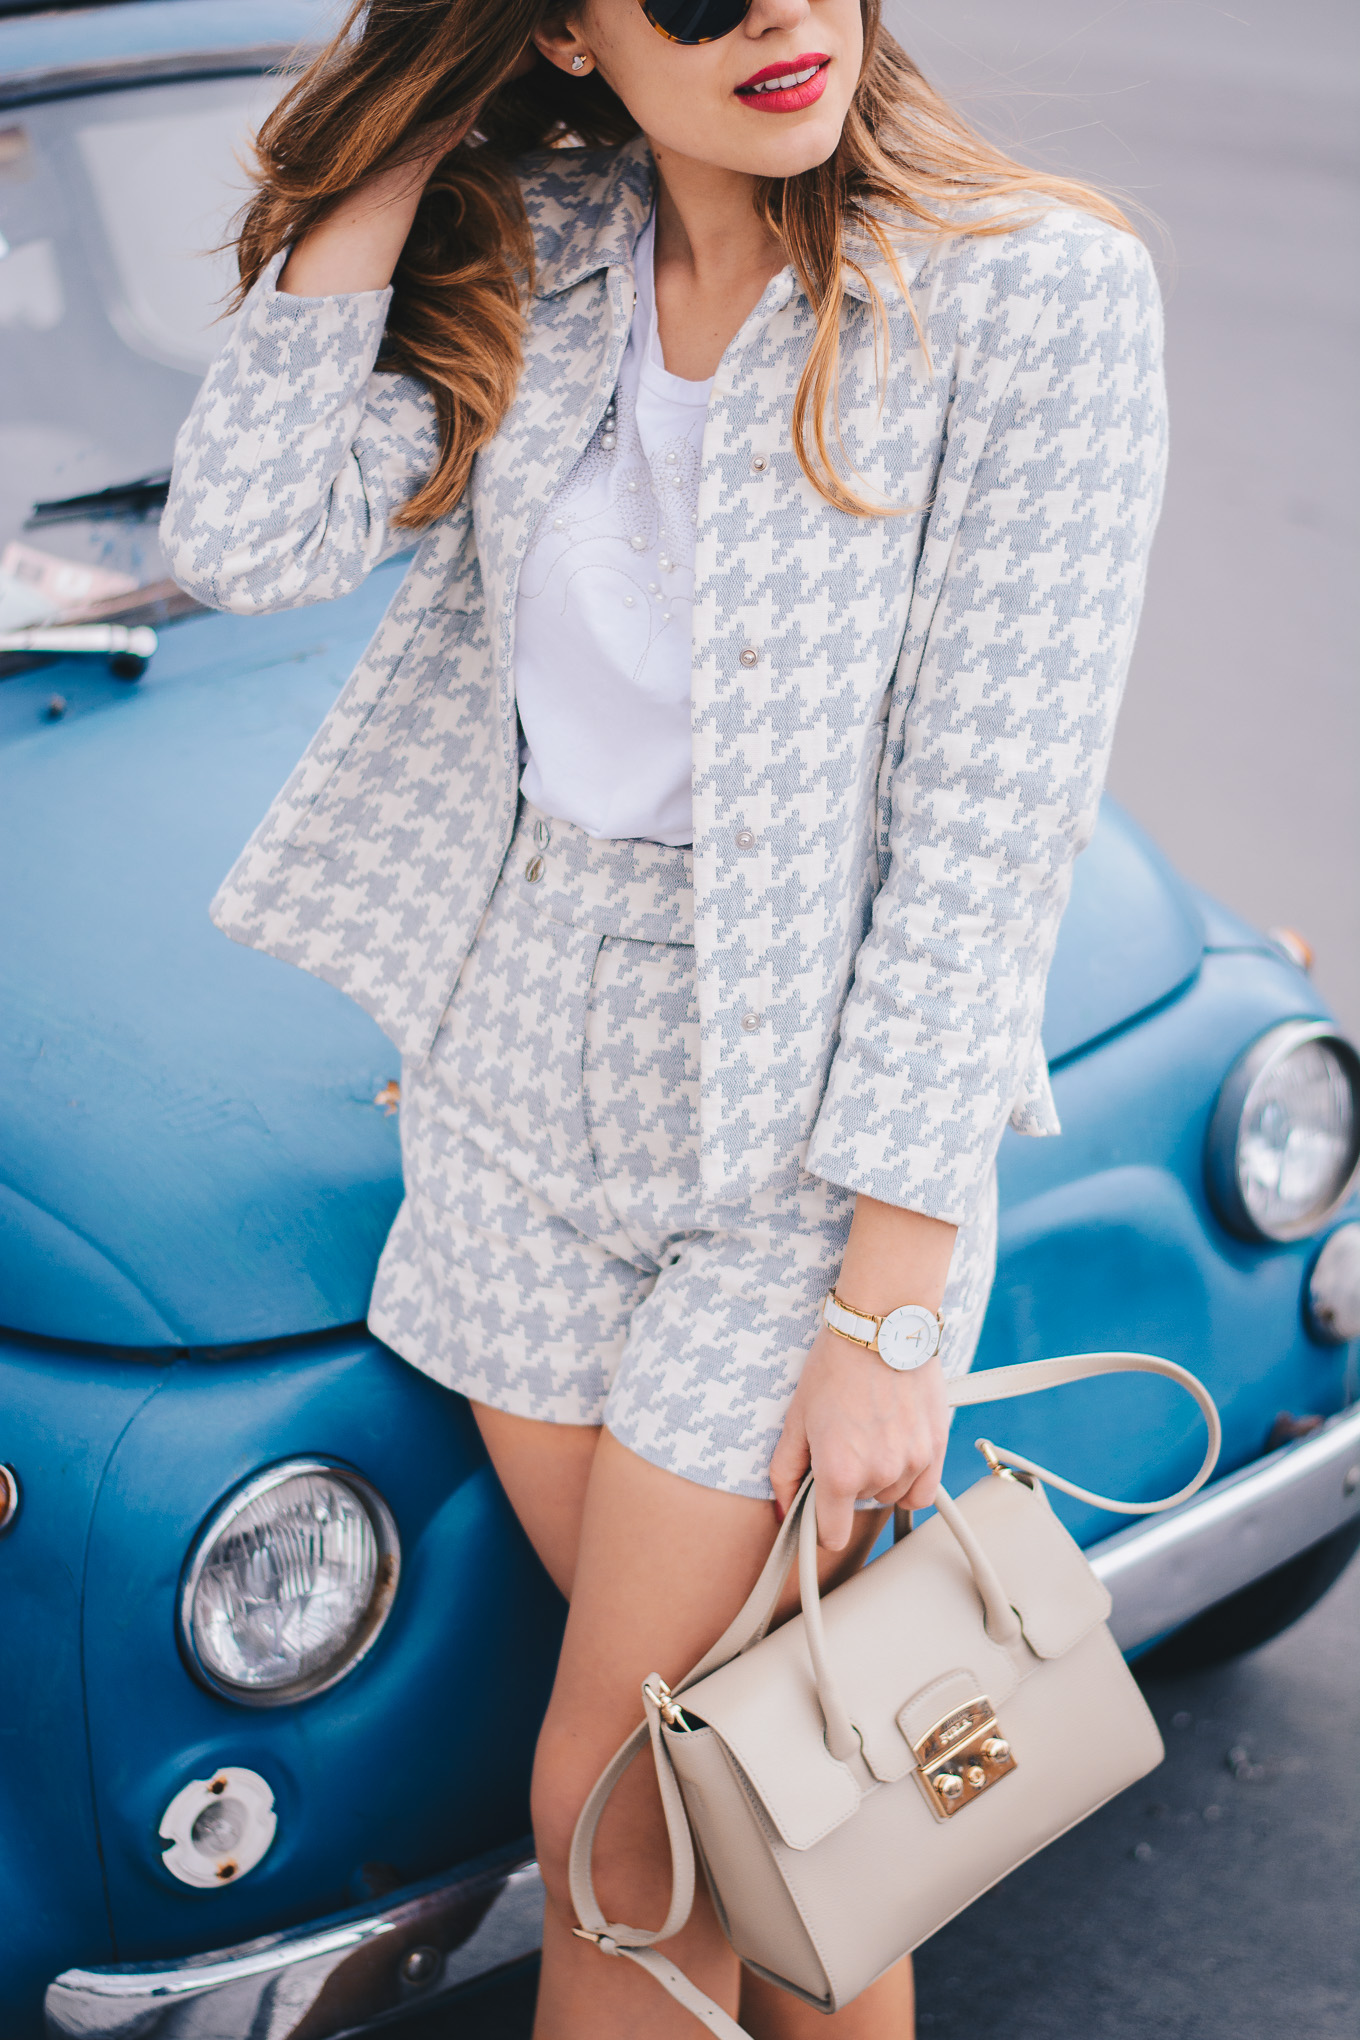 If you love houndstooth